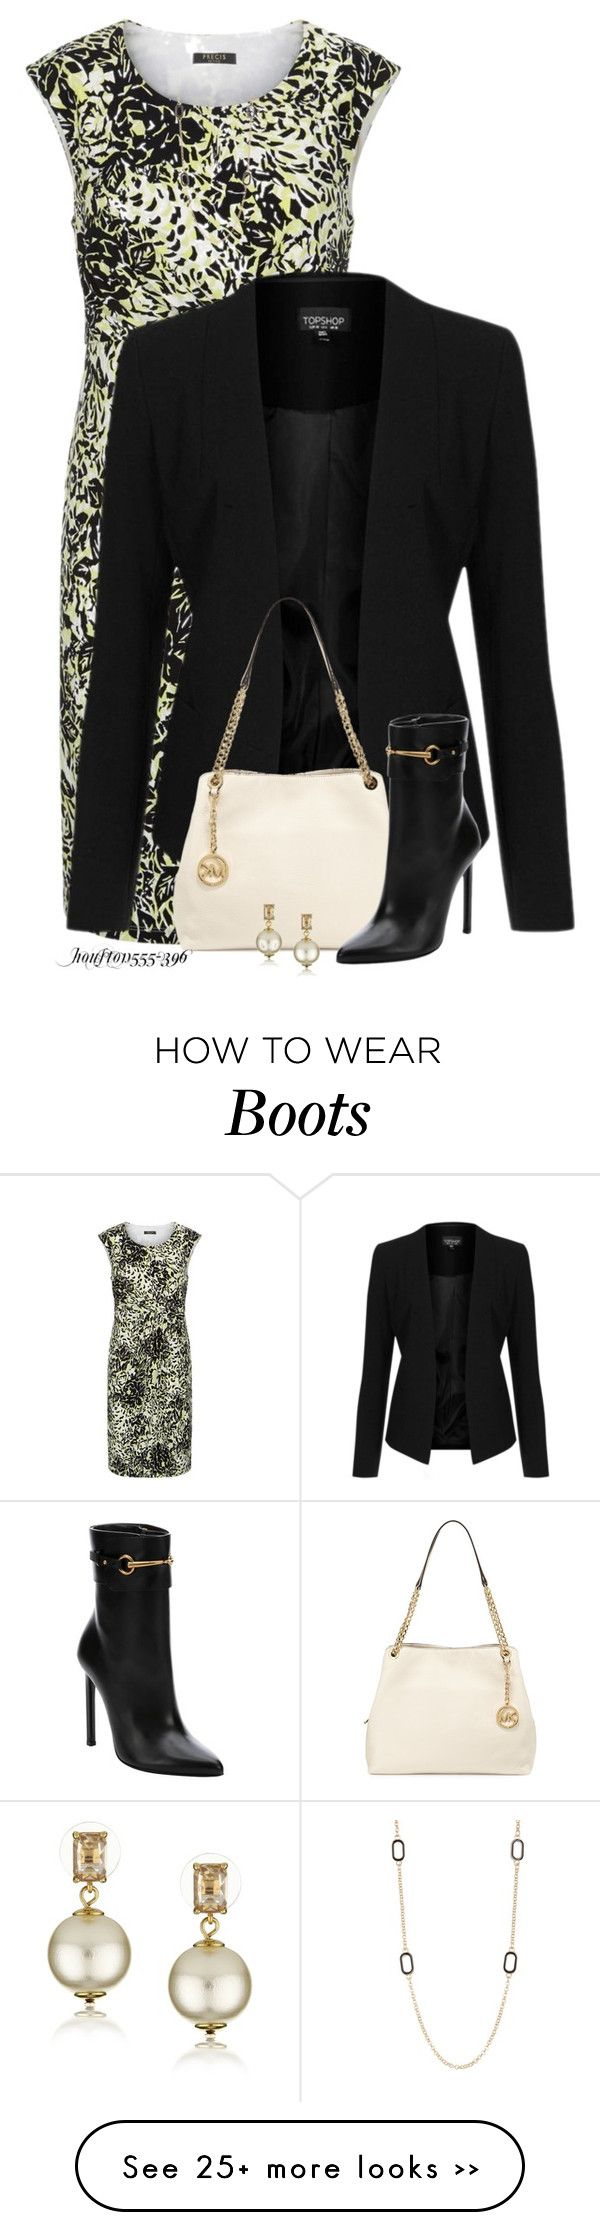 """""""Gucci Boots"""" by houston555-396 on Polyvore featuring Mode, Precis Petite, Topshop, MICHAEL Michael Kors, Gucci, Kate Spade und Nordstrom Rack"""